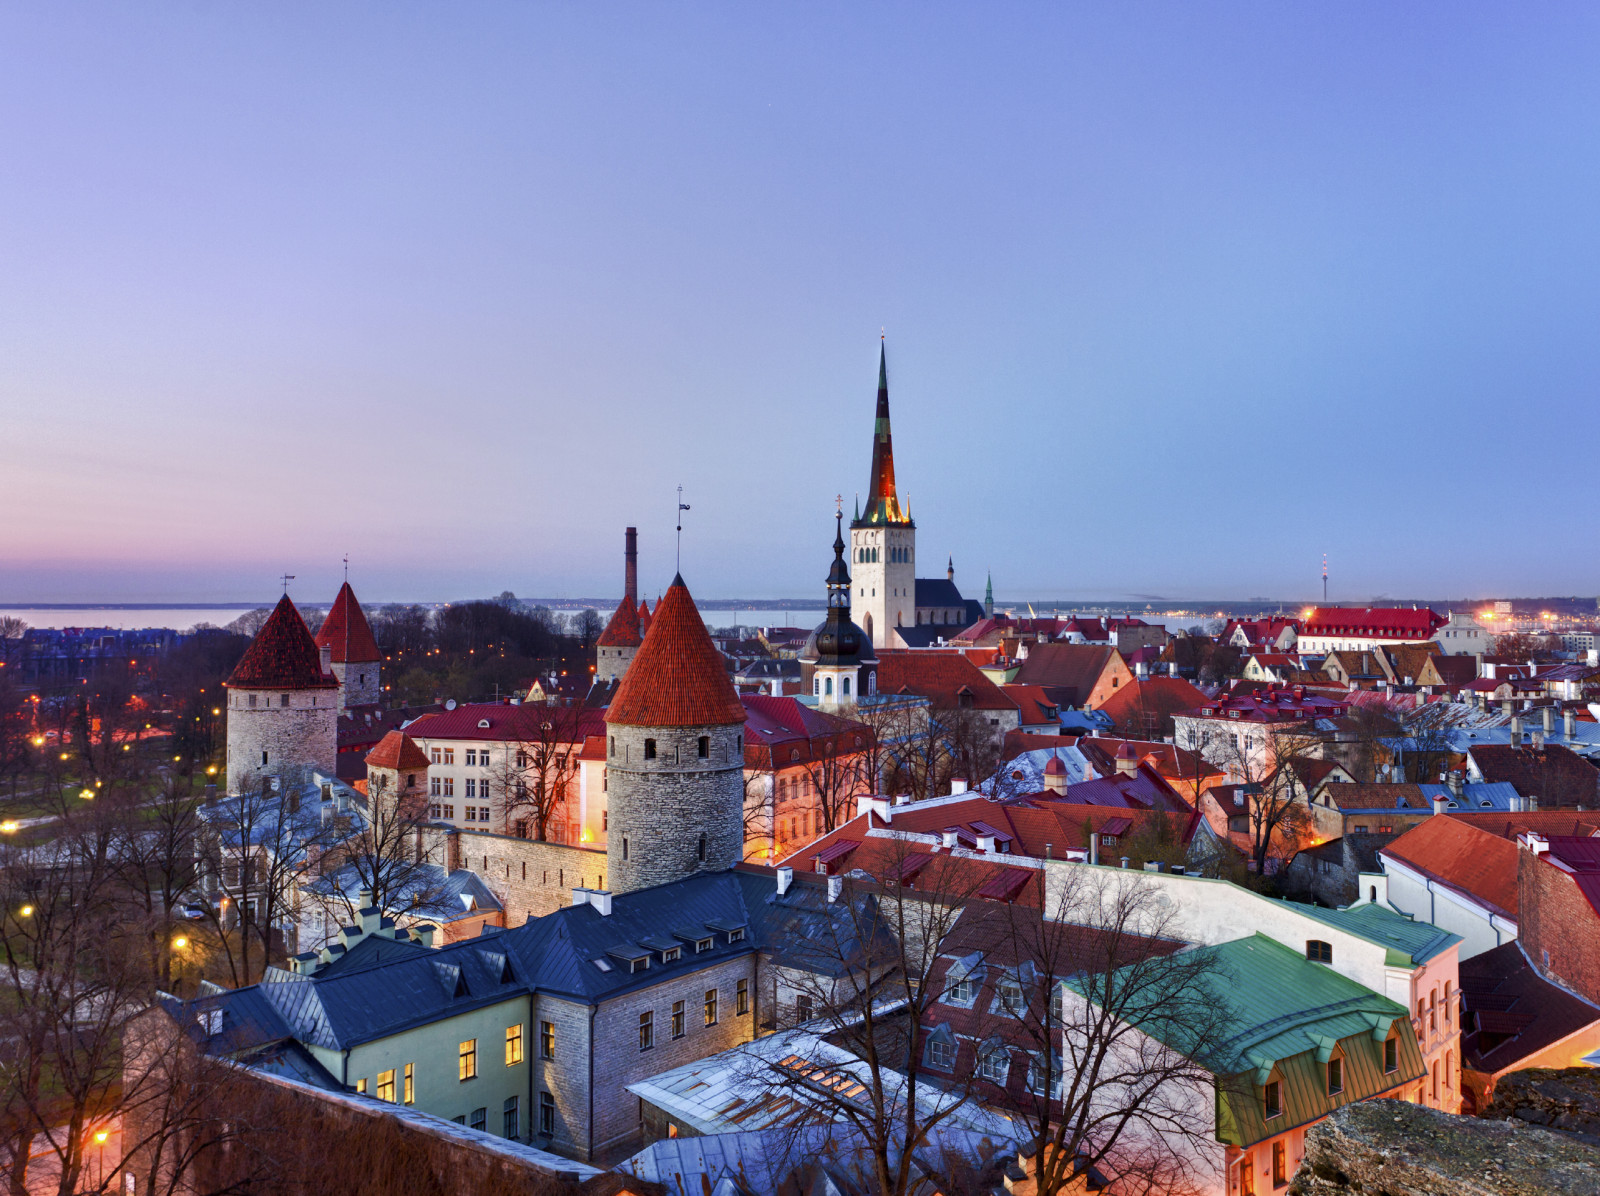 Old town of Tallinn Estonia